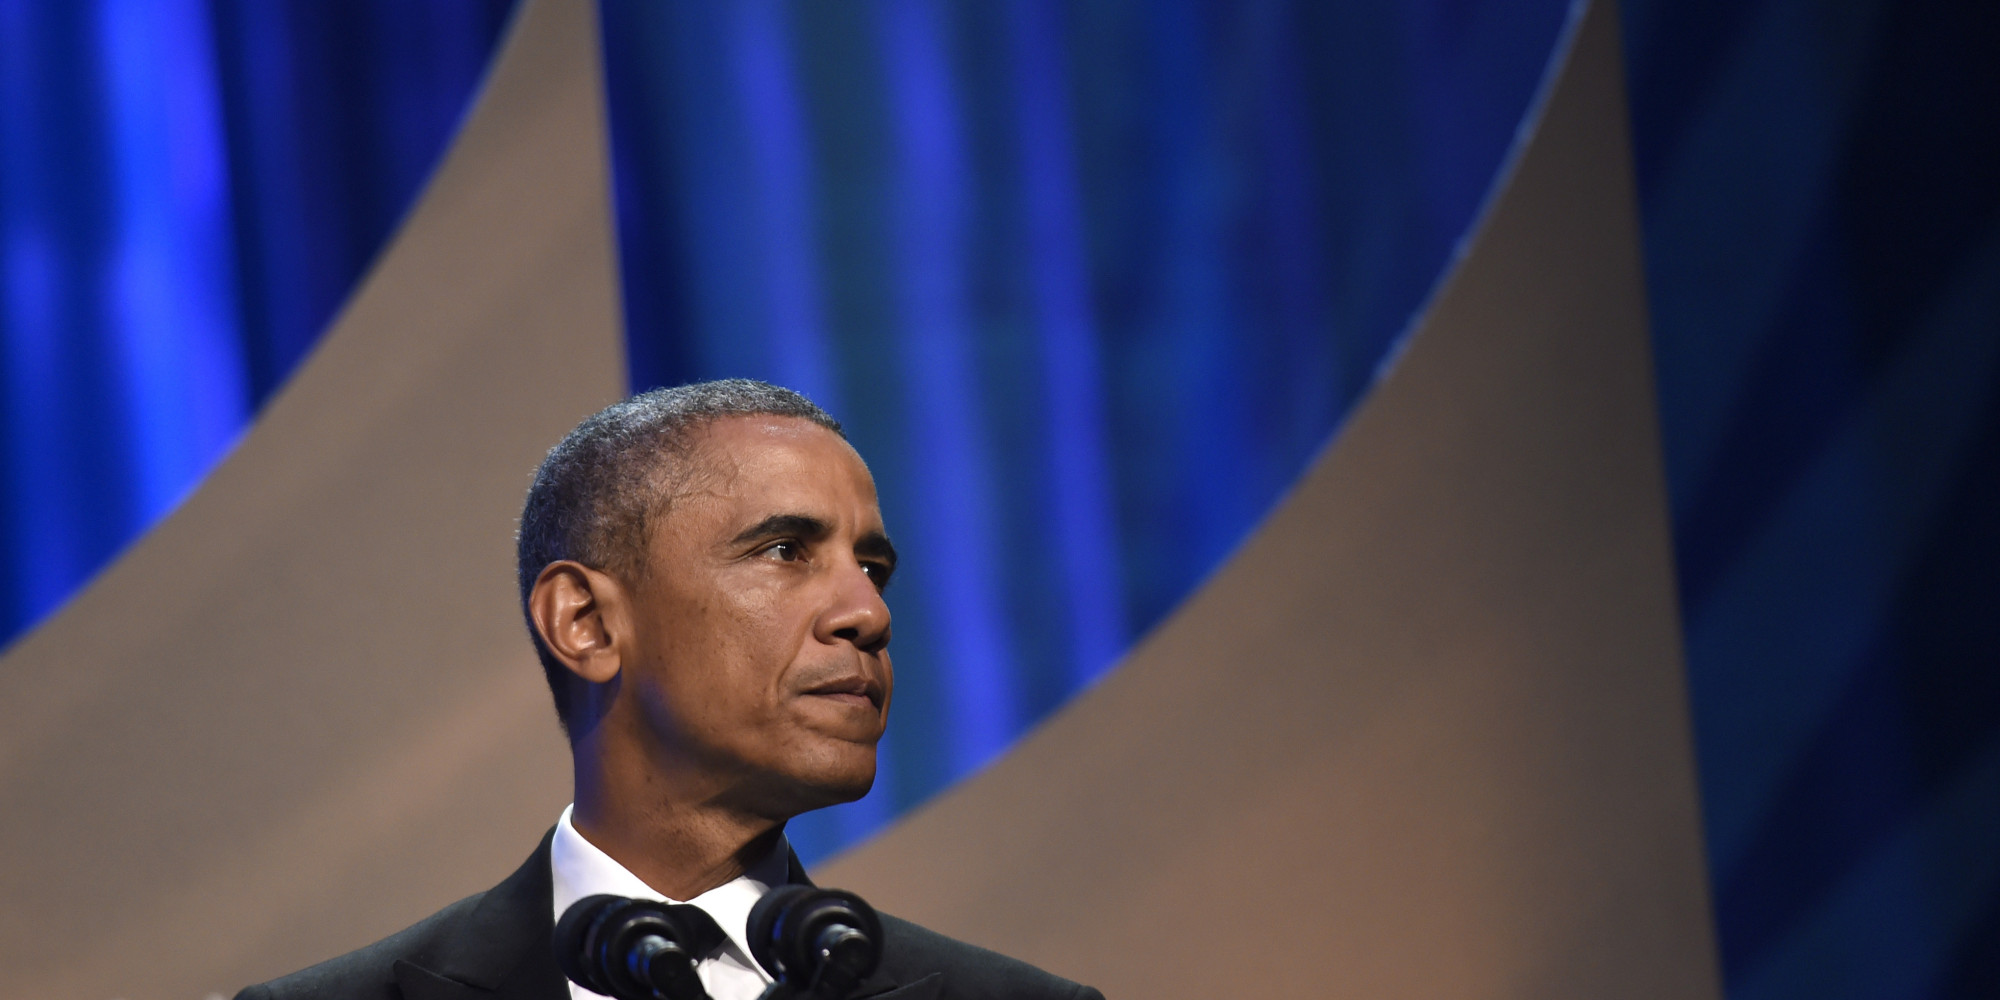 Armed Former Convict Allowed On Elevator With Obama